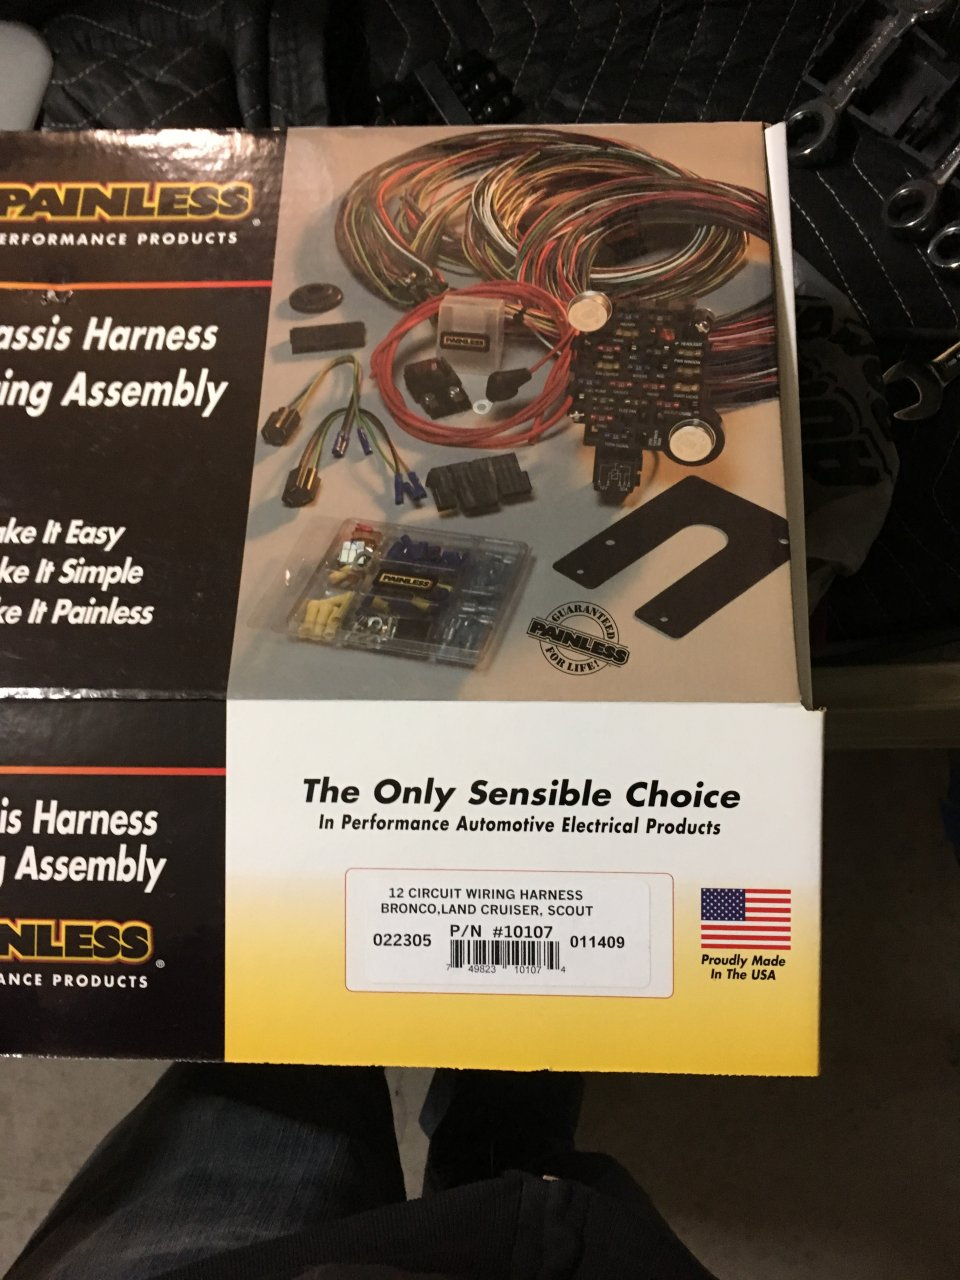 For Sale Painless 10107 wiring harness new in box.